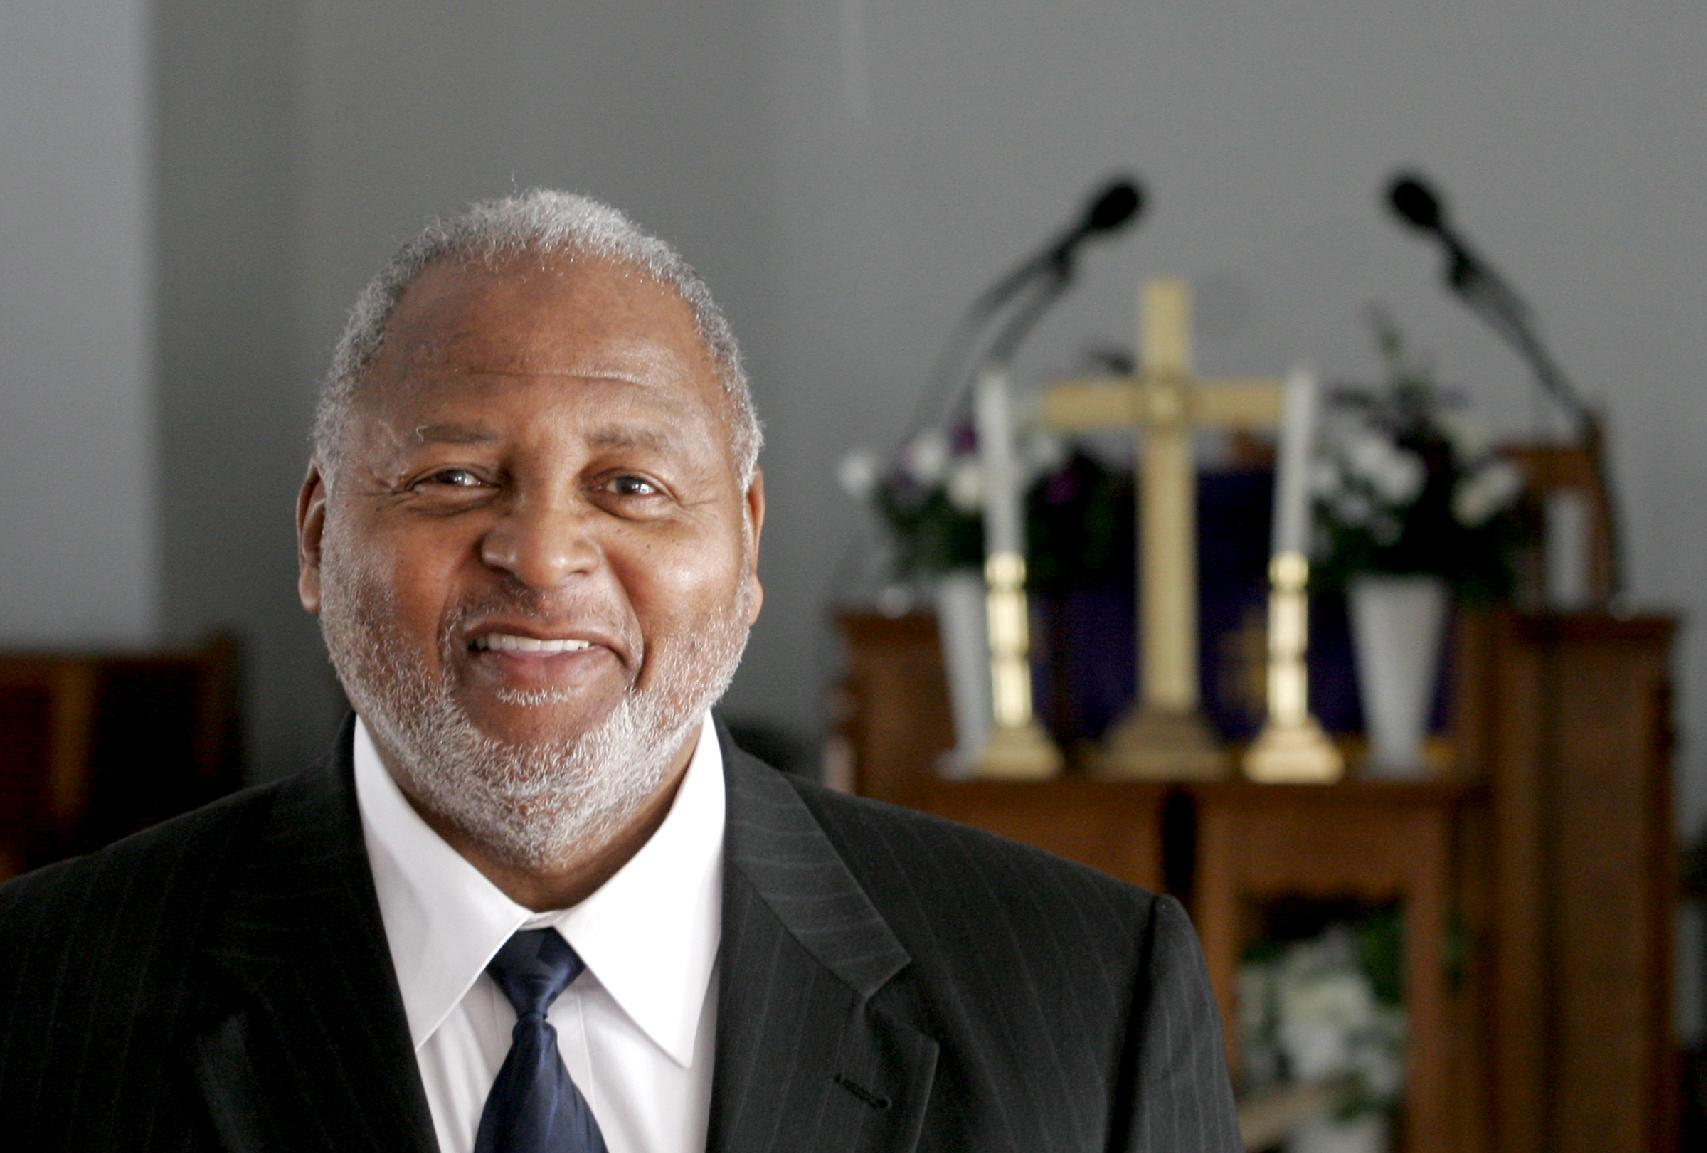 The Rev. William B. Schooler is pictured in January 2011 photo in Dayton, Ohio. Schooler, 70, was fatallly shot Sunday, Feb. 28, 2016, while in his office at St. Peter's Missionary Baptist Church in Dayton, Dayton police said. His brother, Daniel Gregory Schooler, 68, was arrested at the scene and taken to the Montgomery County jail. He faces a murder charge on Monday, said Sgt. Richard Blommel. (Chris Stewart/Dayton Daily News/AP)